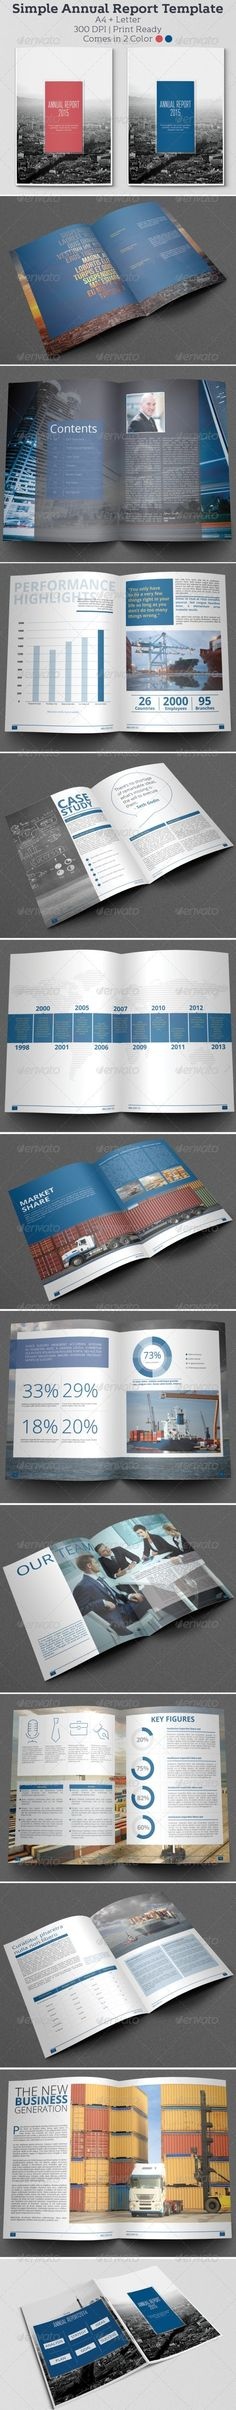 36 Pages Annual Report Tmeplate Minimal, Http  www - business annual report template